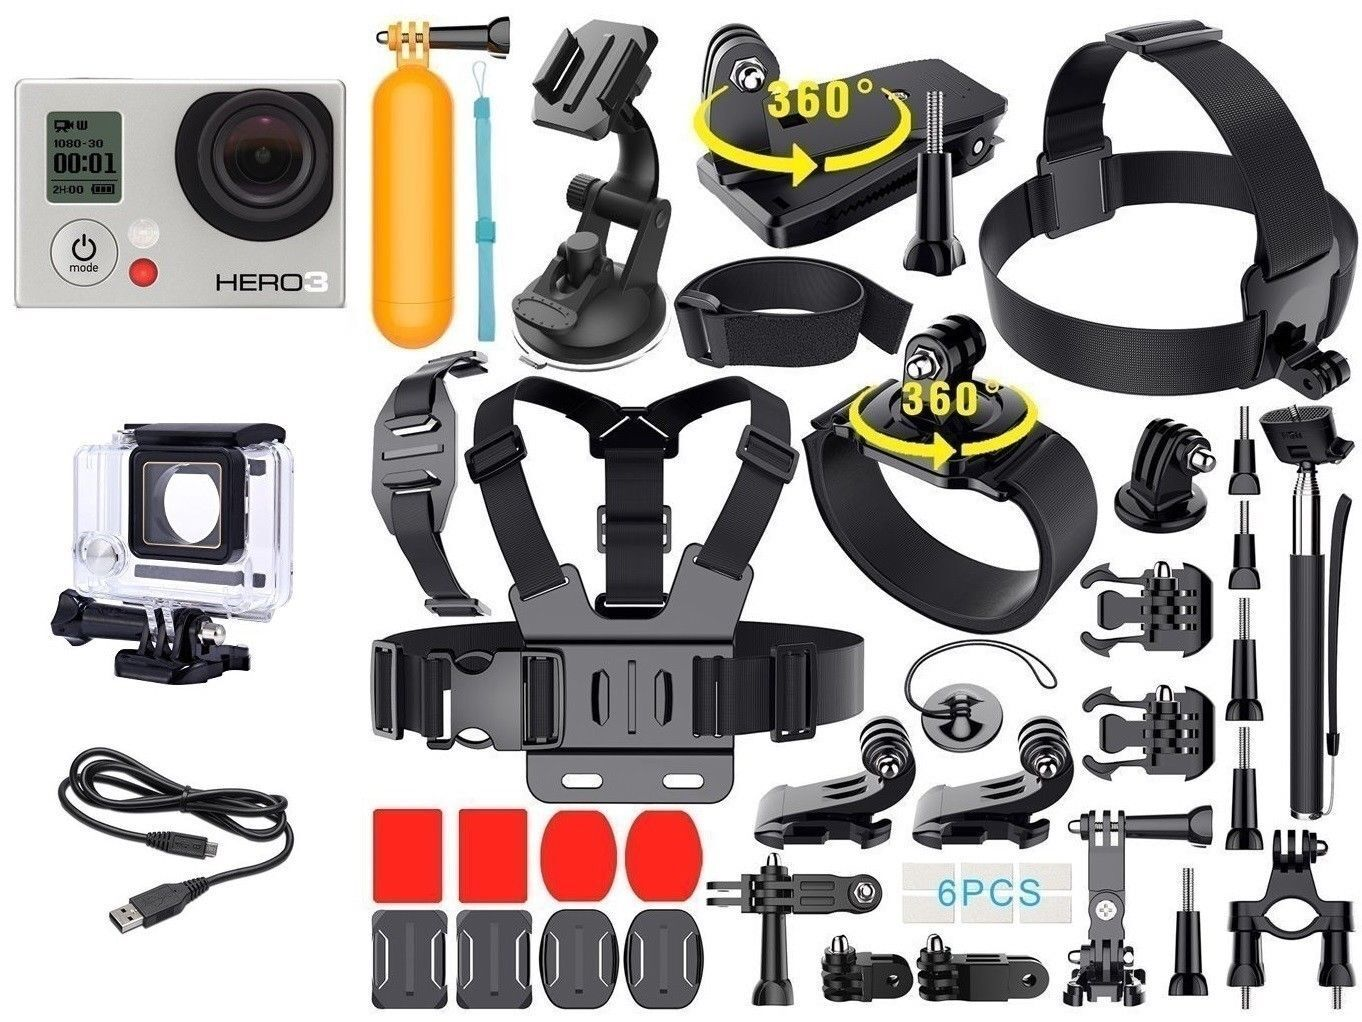 GoPro HERO 3 White Edition + Extreme Sports Kit Accessories Bundle CHDHE301